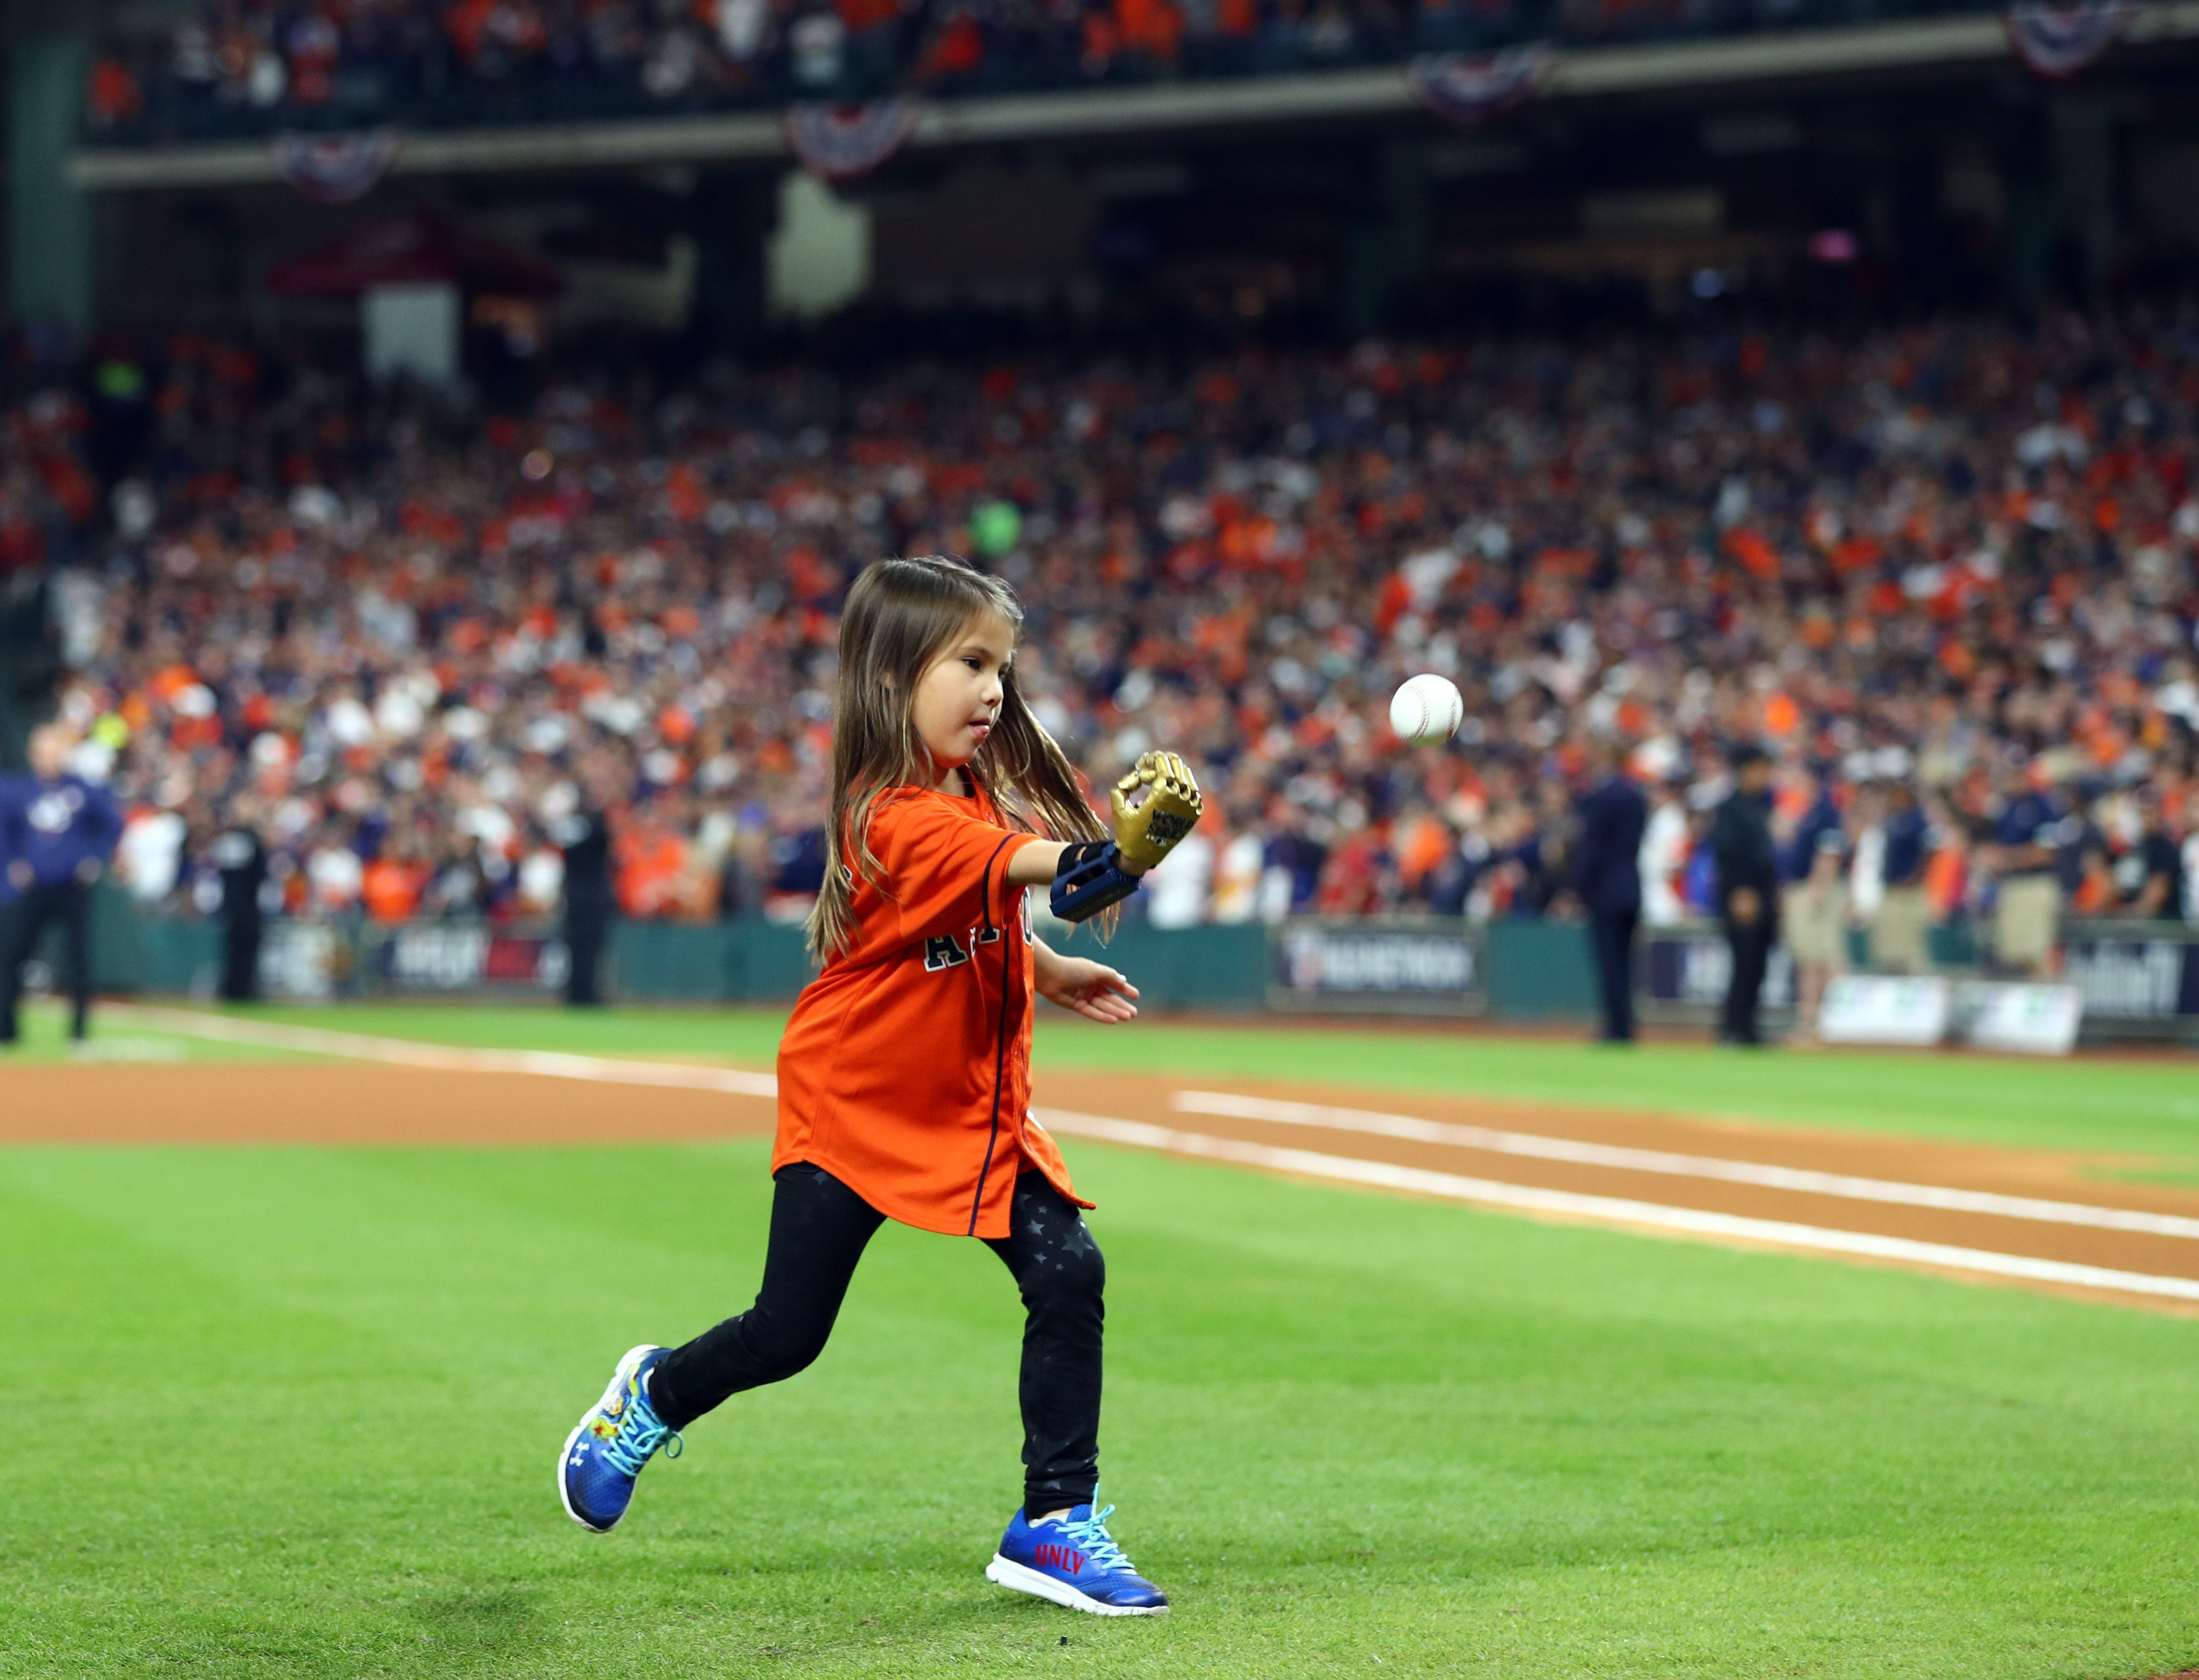 HOUSTON, TX - OCTOBER 28:  Hailey Dawson throws out the ceremonial first pitch before Game 4 of the 2017 World Series between the Los Angeles Dodgers and the Houston Astros at Minute Maid Park on Saturday, October 28, 2017 in Houston, Texas. (Photo by Alex Trautwig/MLB Photos via Getty Images)